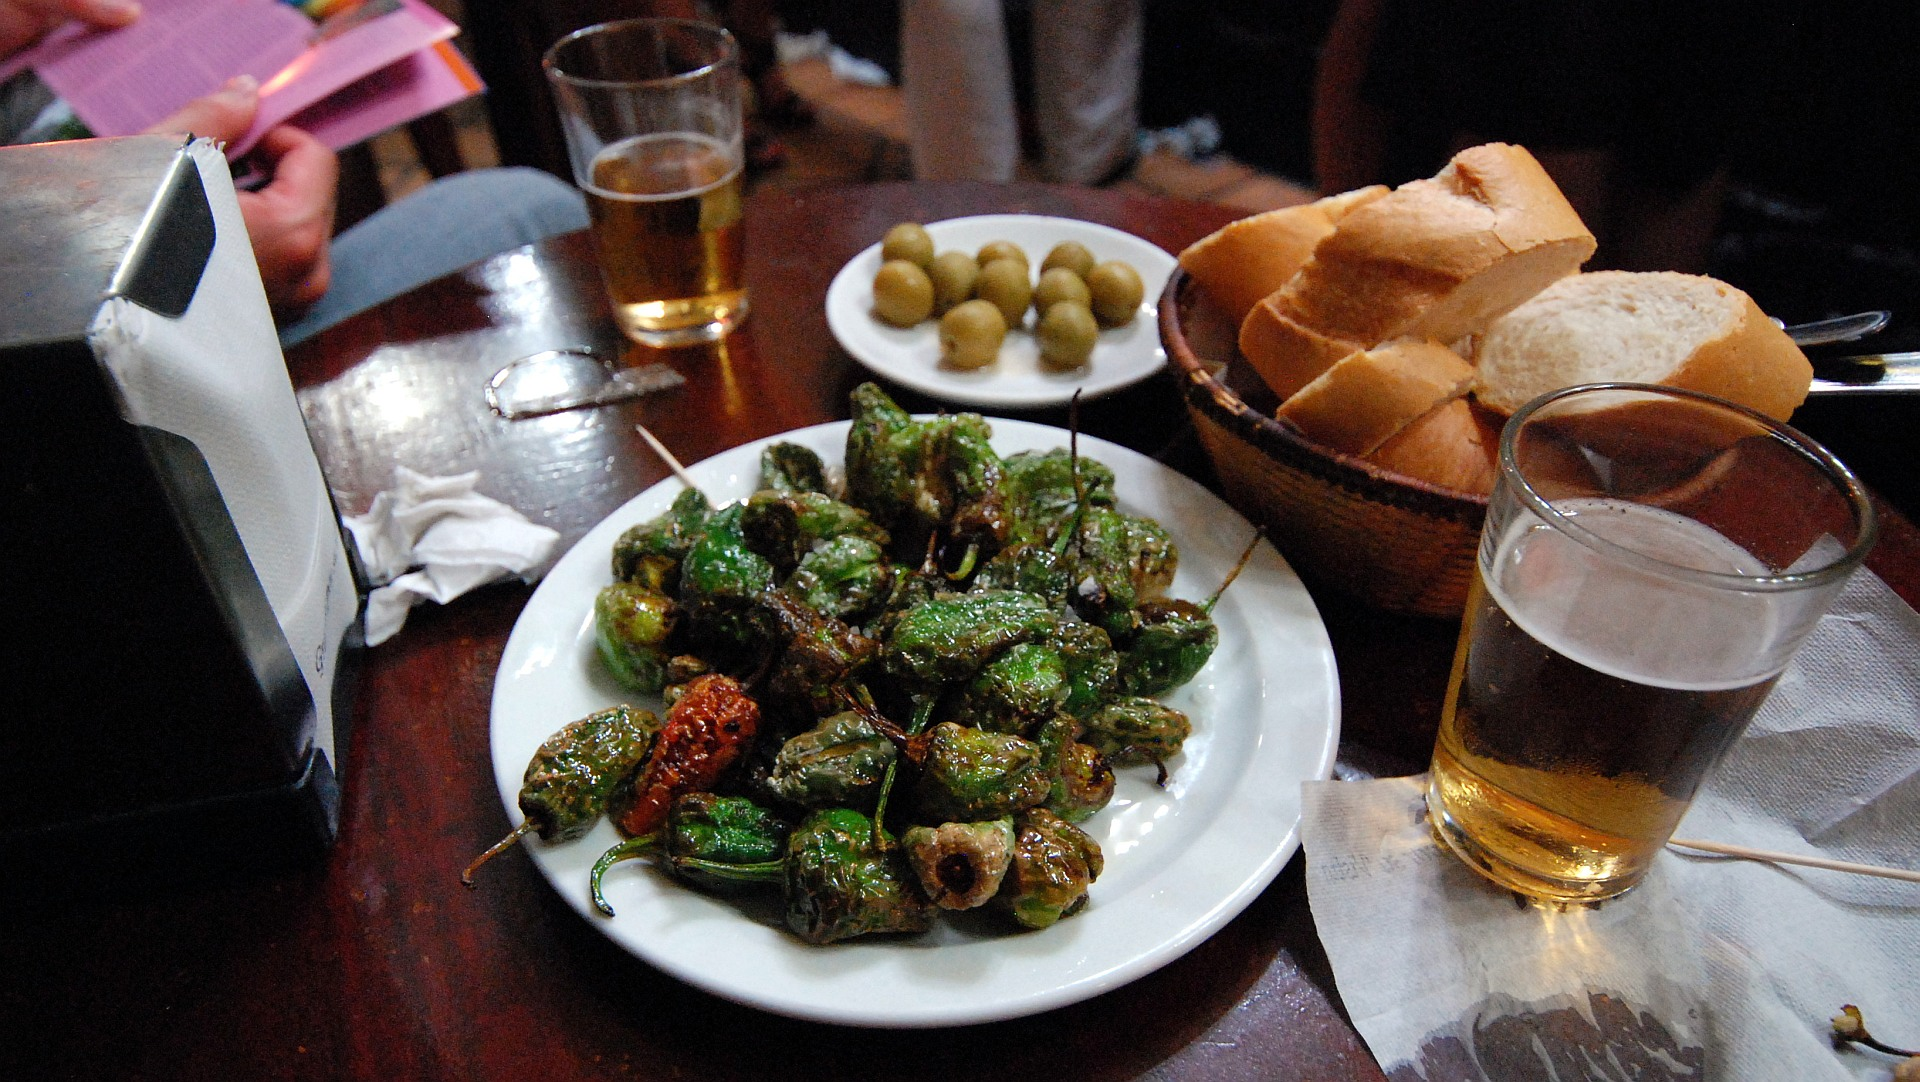 File:Pimientos de Padrón Madrid 2010 0709.jpg - Wikipedia, the free ...